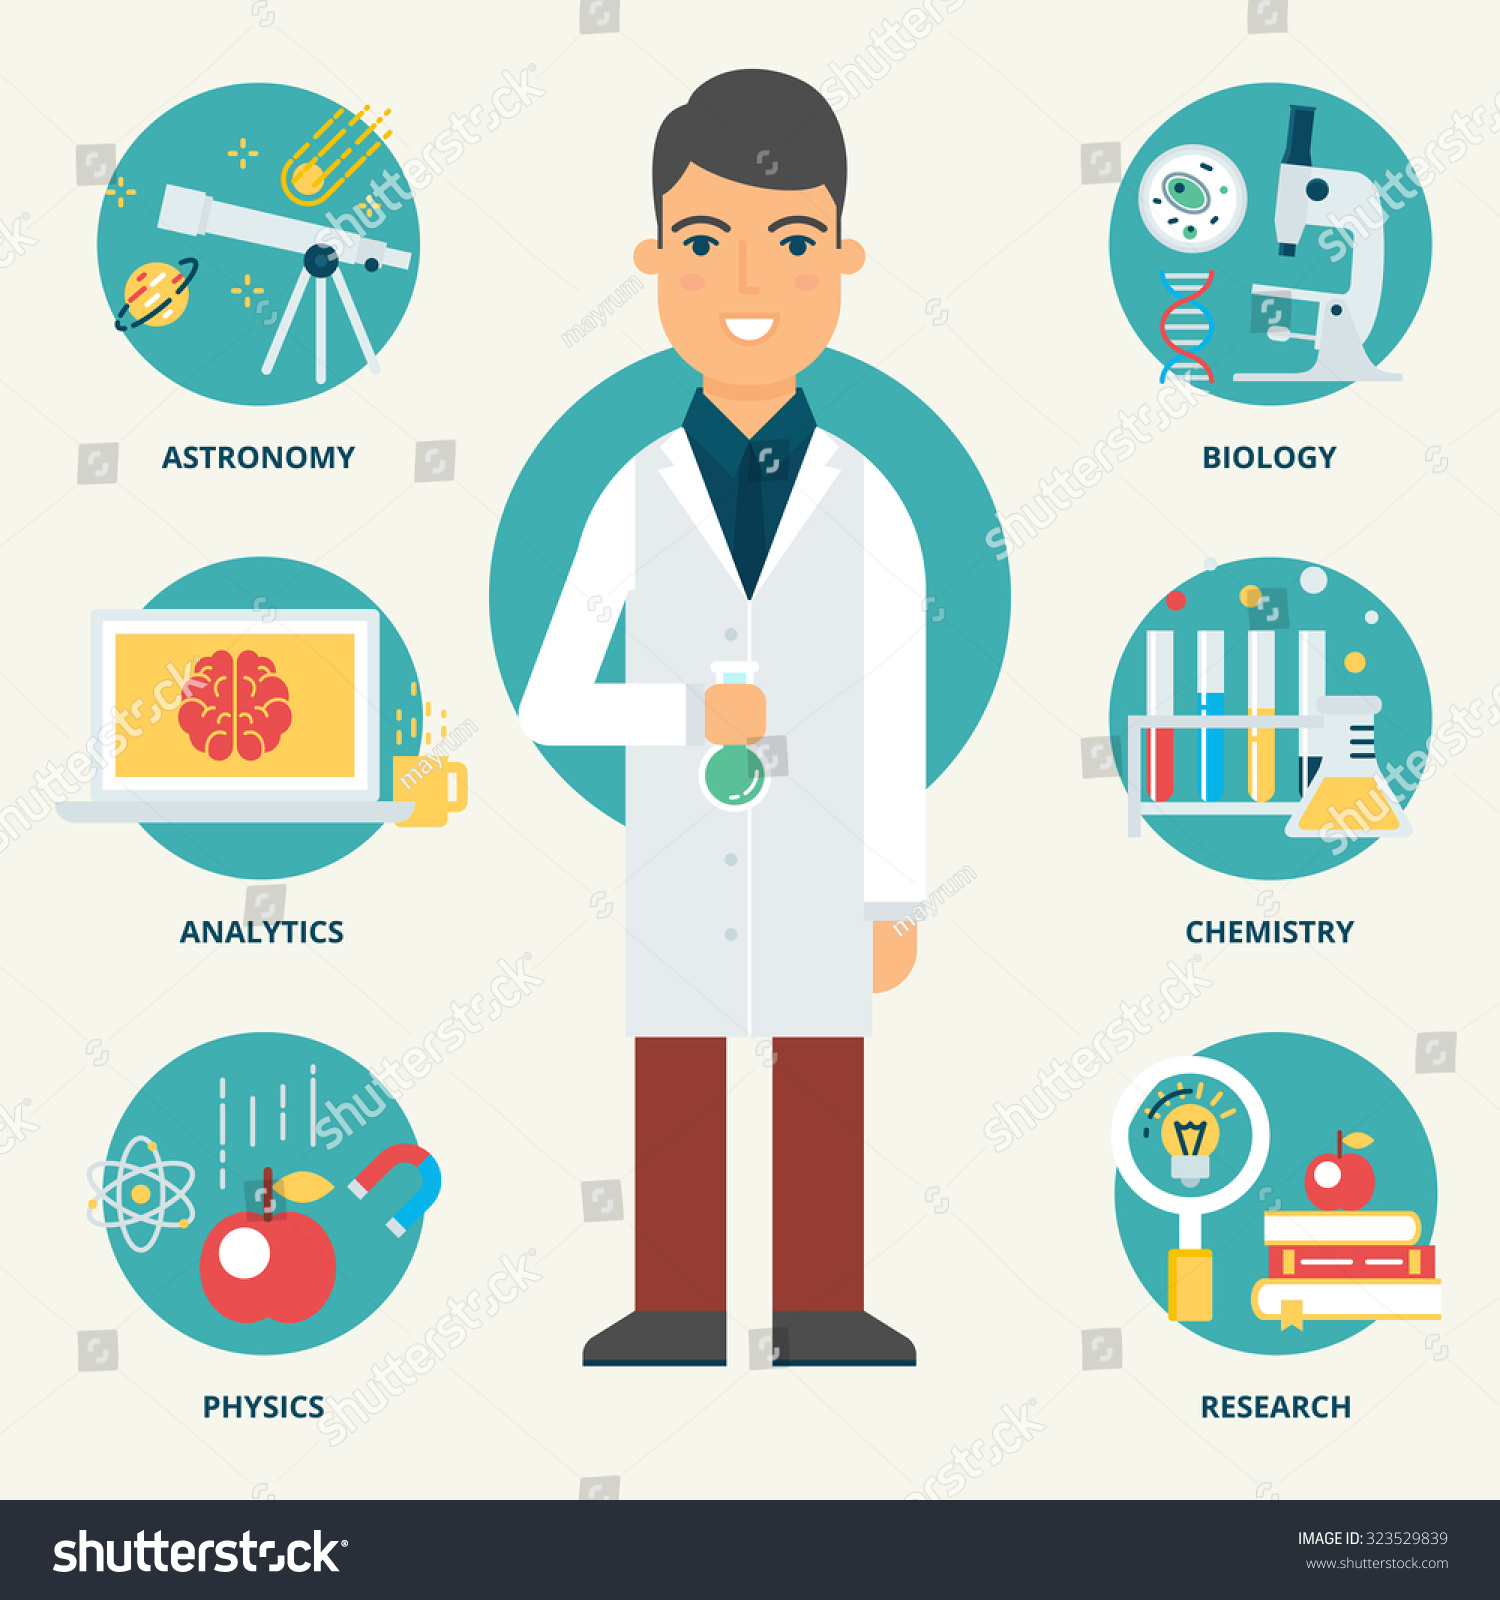 profession scientist vector illustration flat style stock vector royalty free 323529839 https www shutterstock com image vector profession scientist vector illustration flat style 323529839